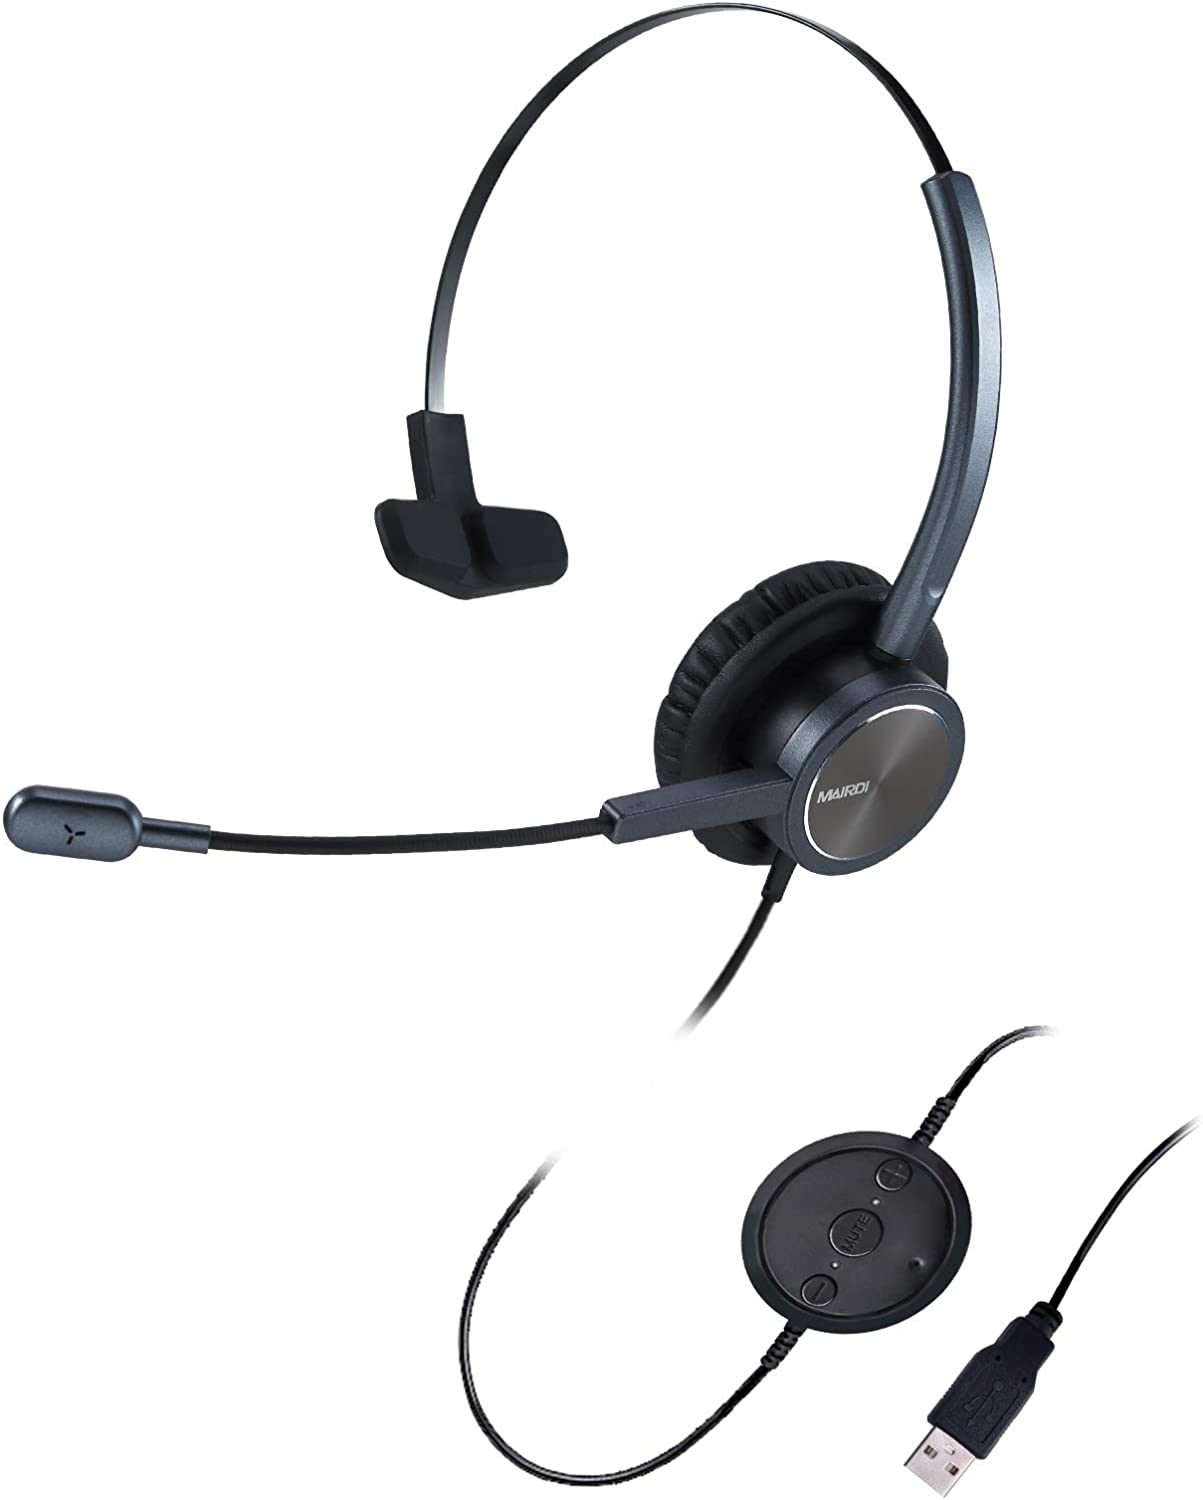 USB Headset with Noise Cancelling Microphone & Mic Mute, Mono Computer Headphone for Call Center Office Business PC Softphone Calls Microsoft Teams Skype Chat, Clear Voice for Voice Recognition